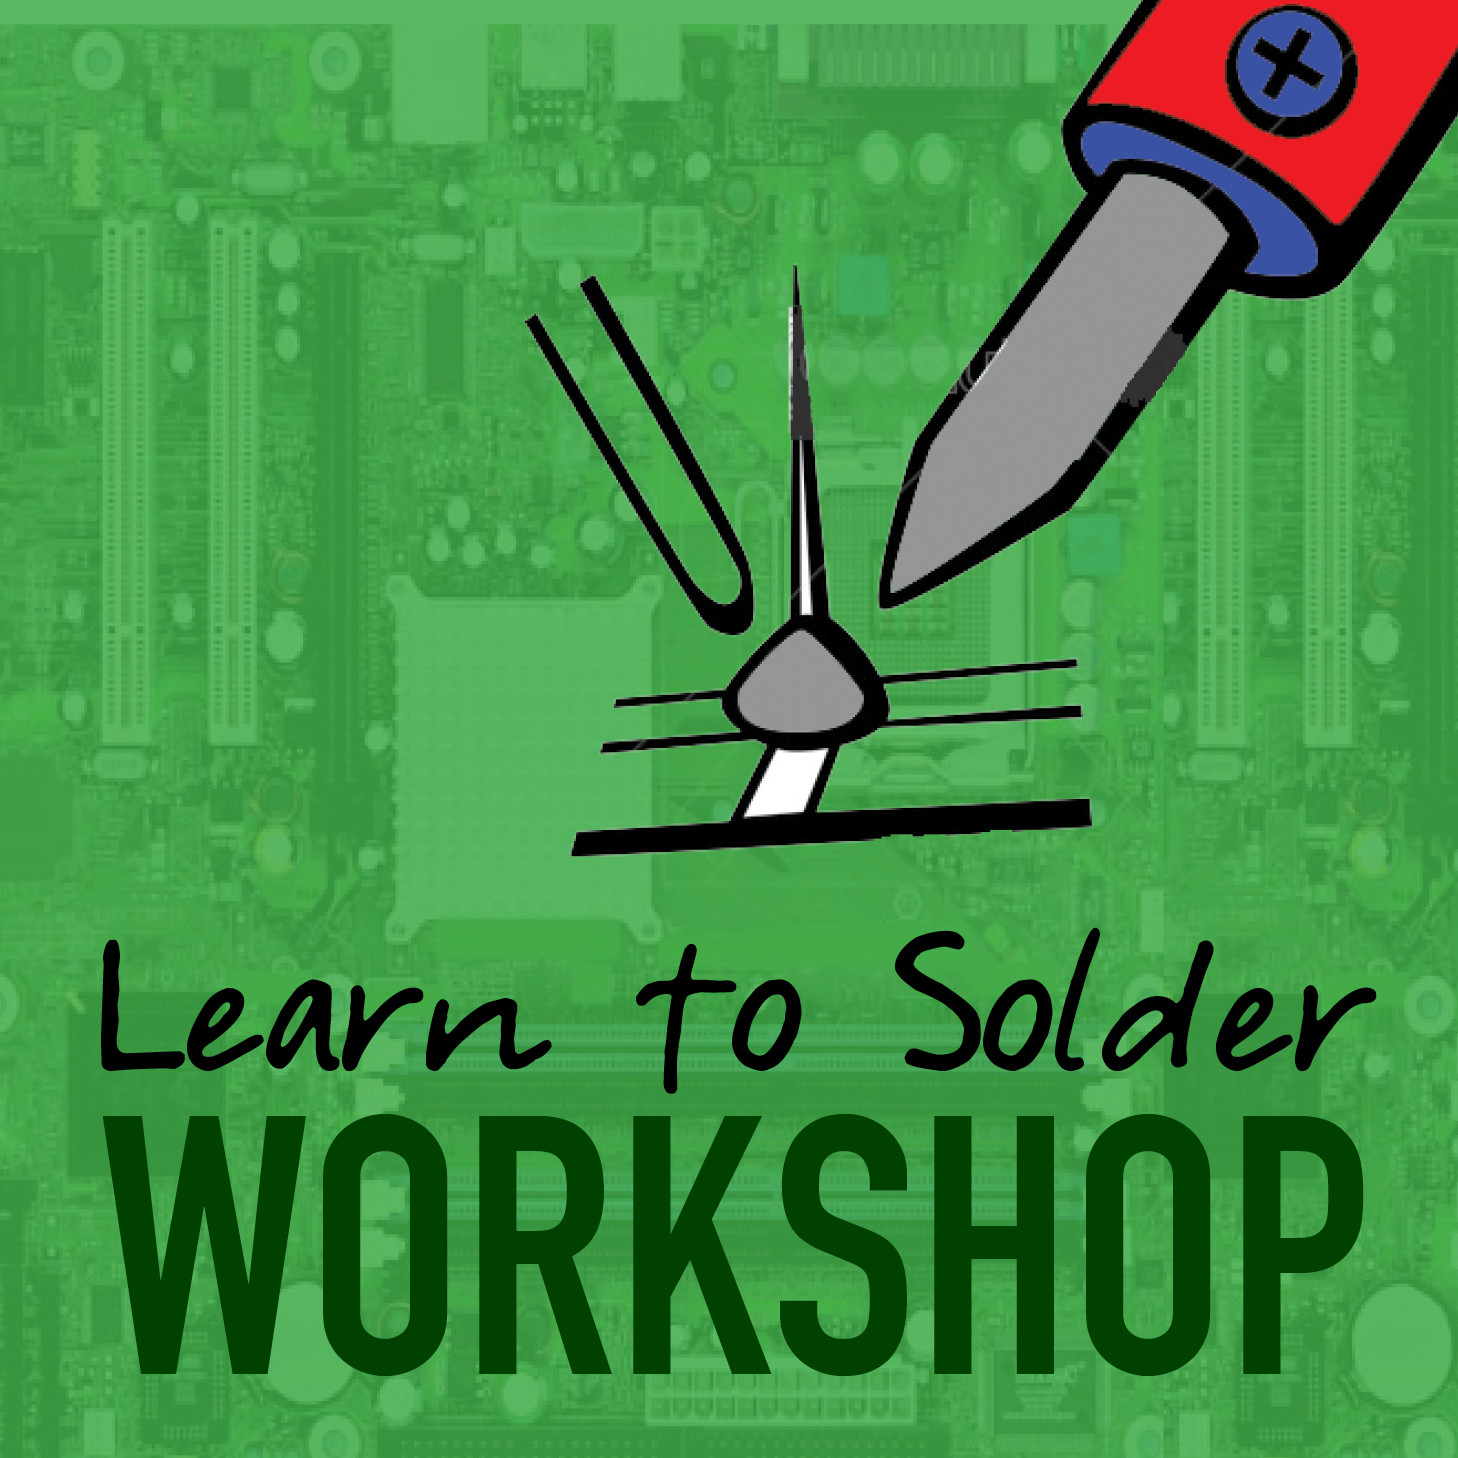 Workshop: Learn to Solder Friday, October 26, 2018 at 10am